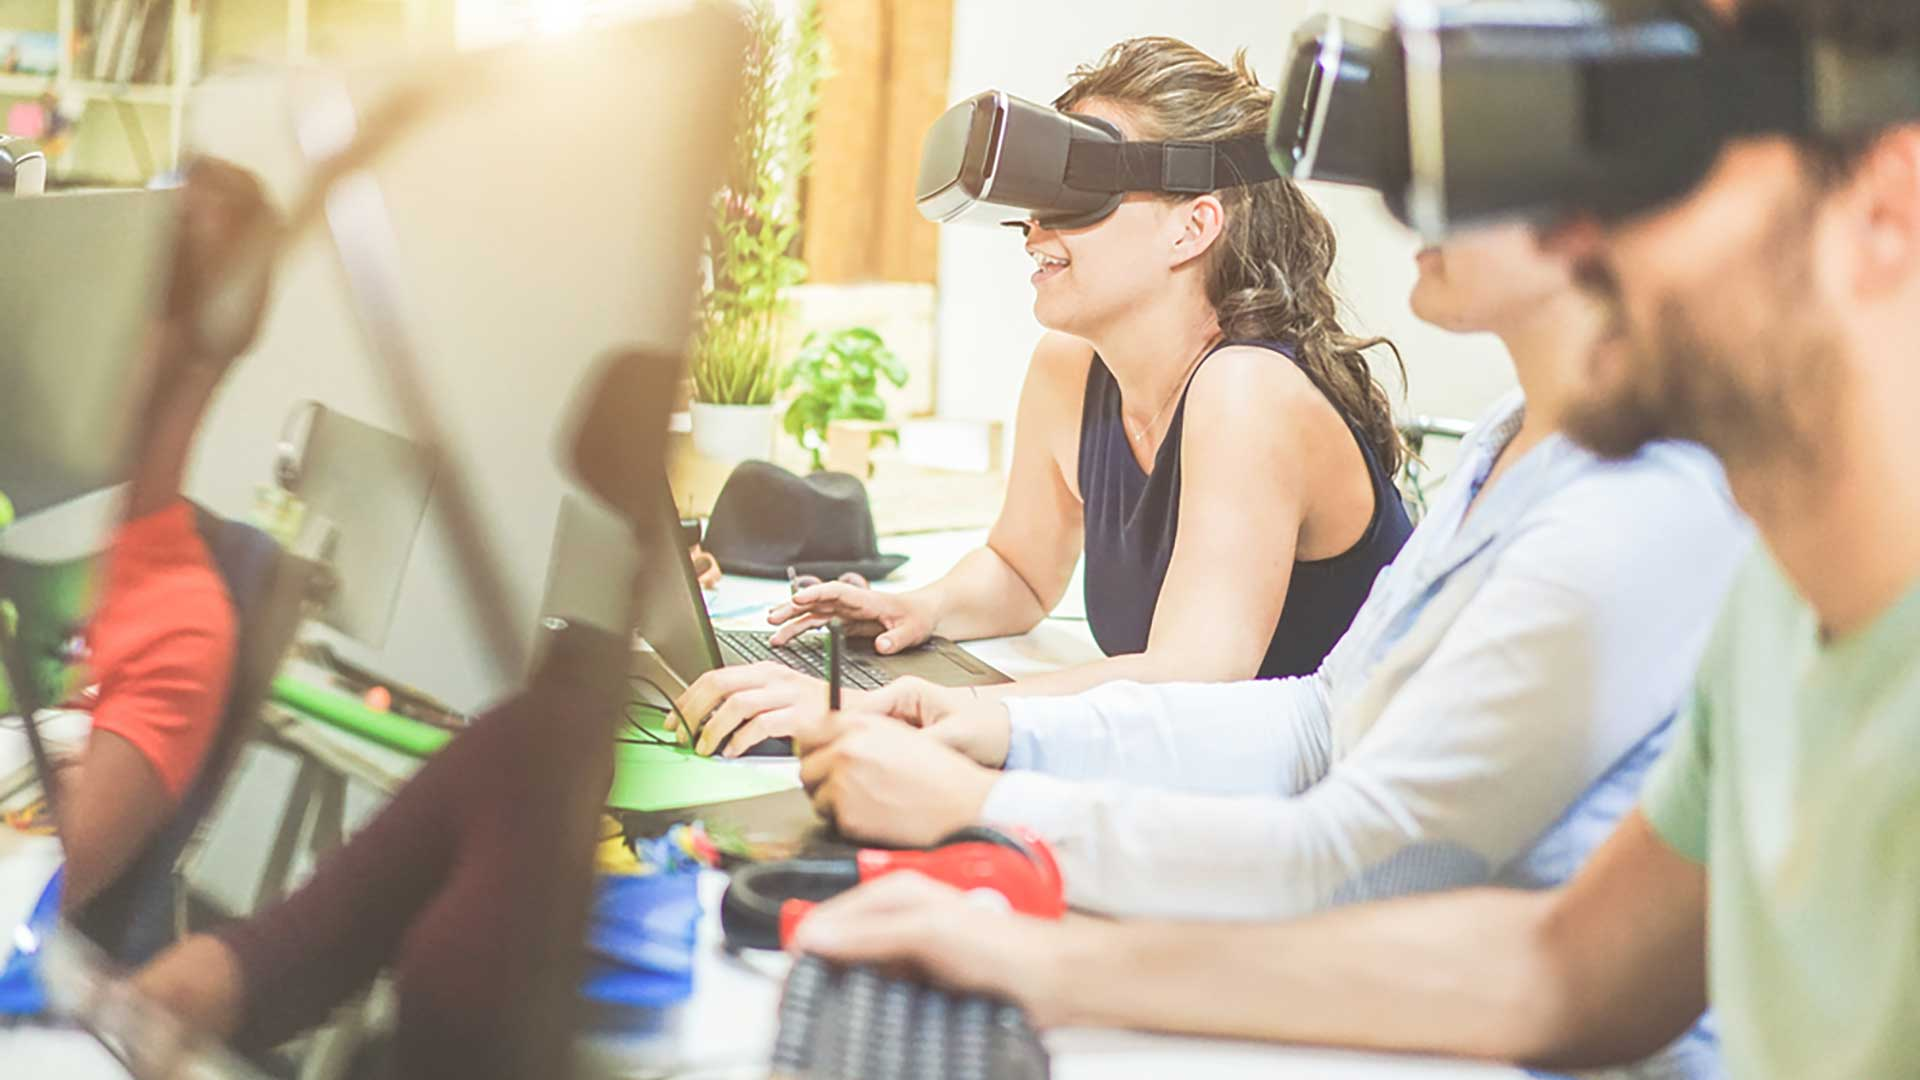 tech-trends-in-the-workplace